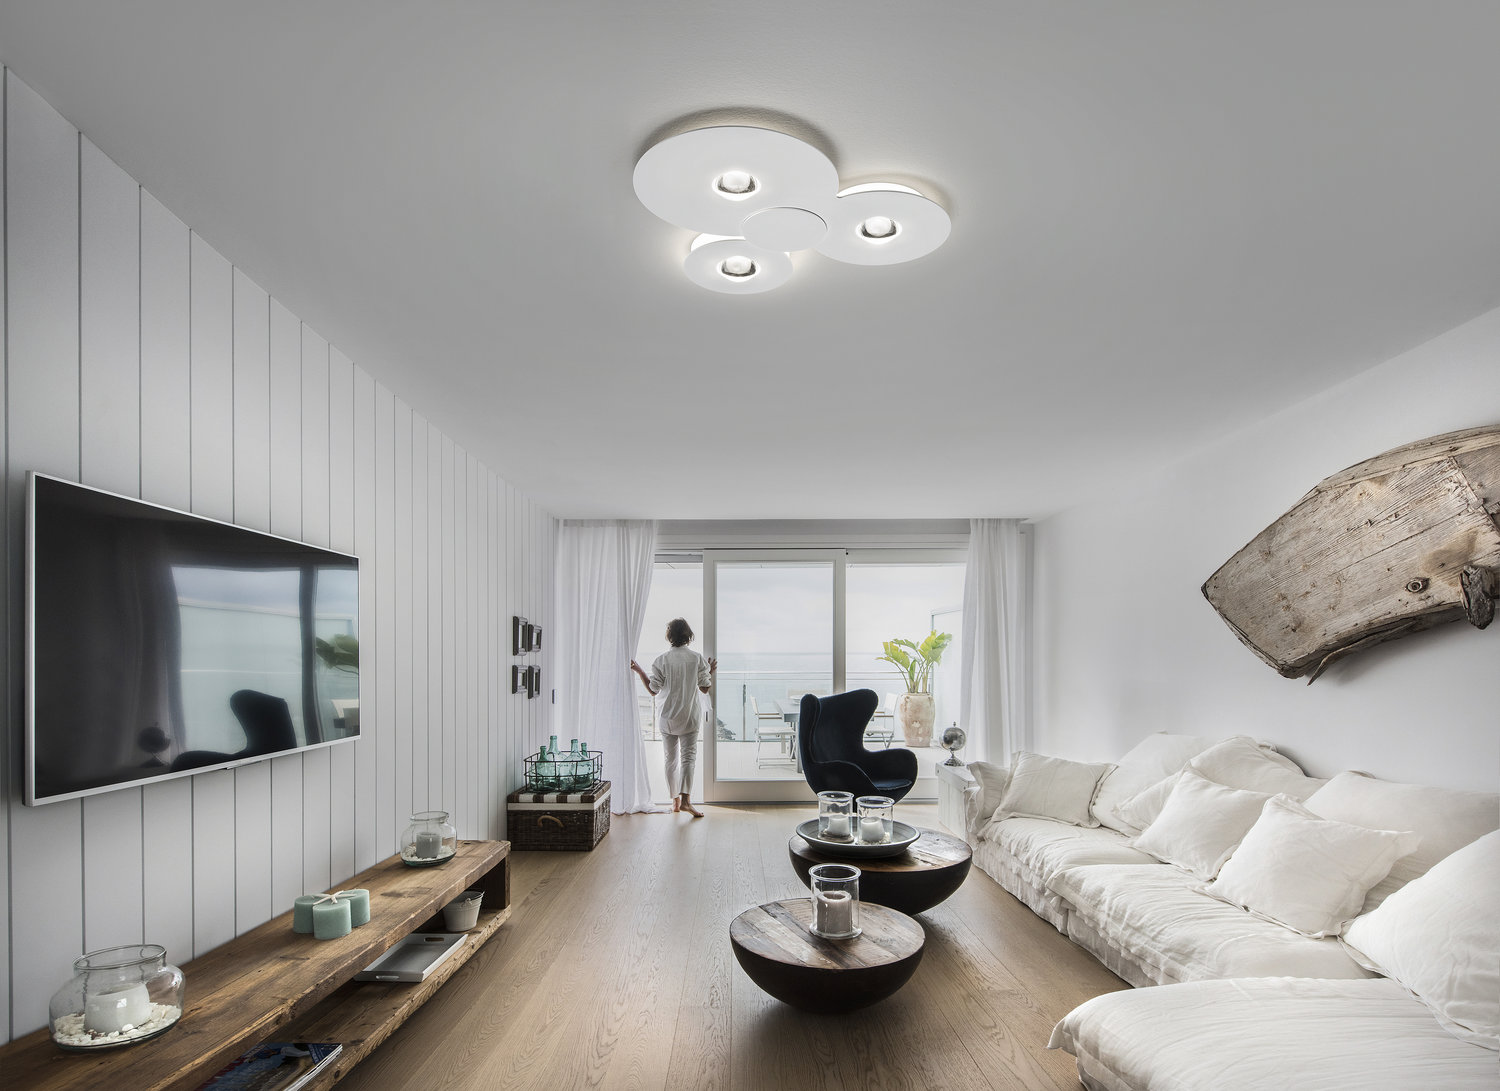 Ceiling Lights - Browse our range of ceiling mounted lights